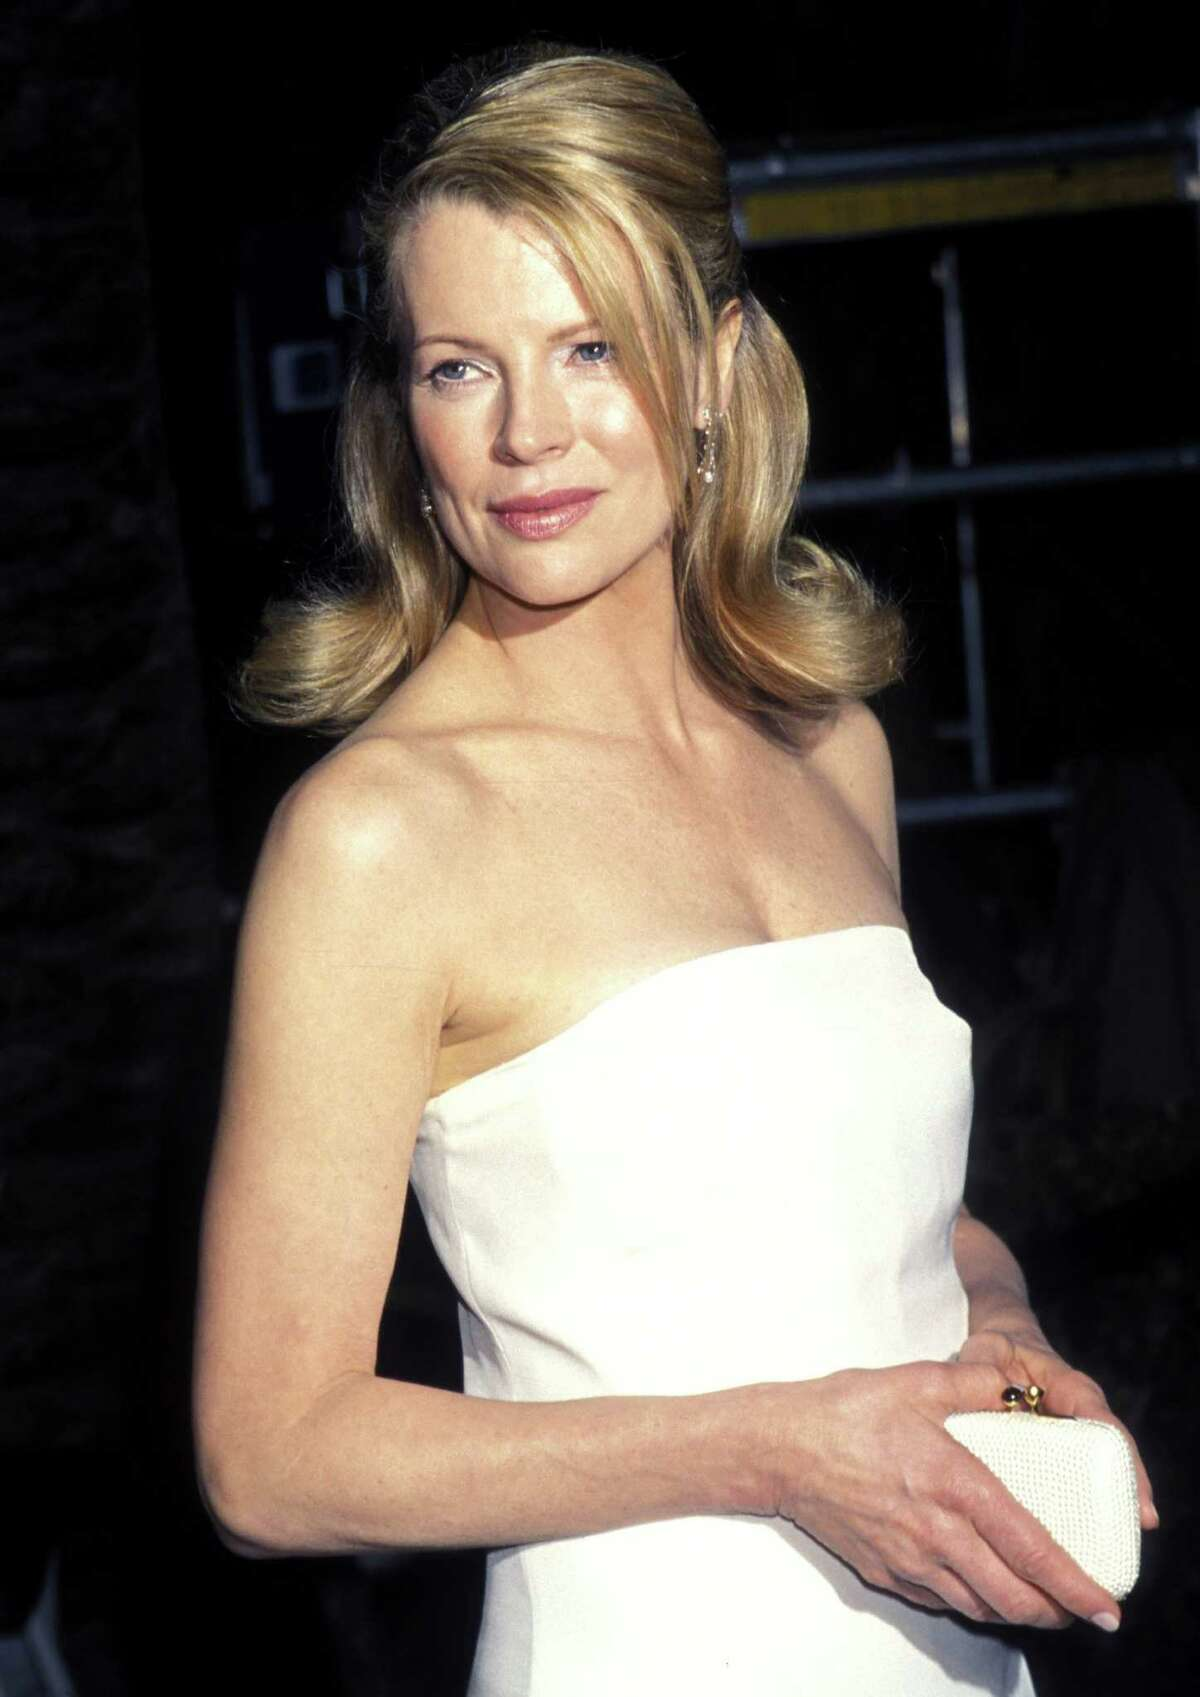 Actress Kim Basinger, born in Georgia on Dec. 8, 1953, has an Oscar to her credit and a long list of solid roles in popular films. This photo was taken March 21, 1999 at an Academy Awards after party.